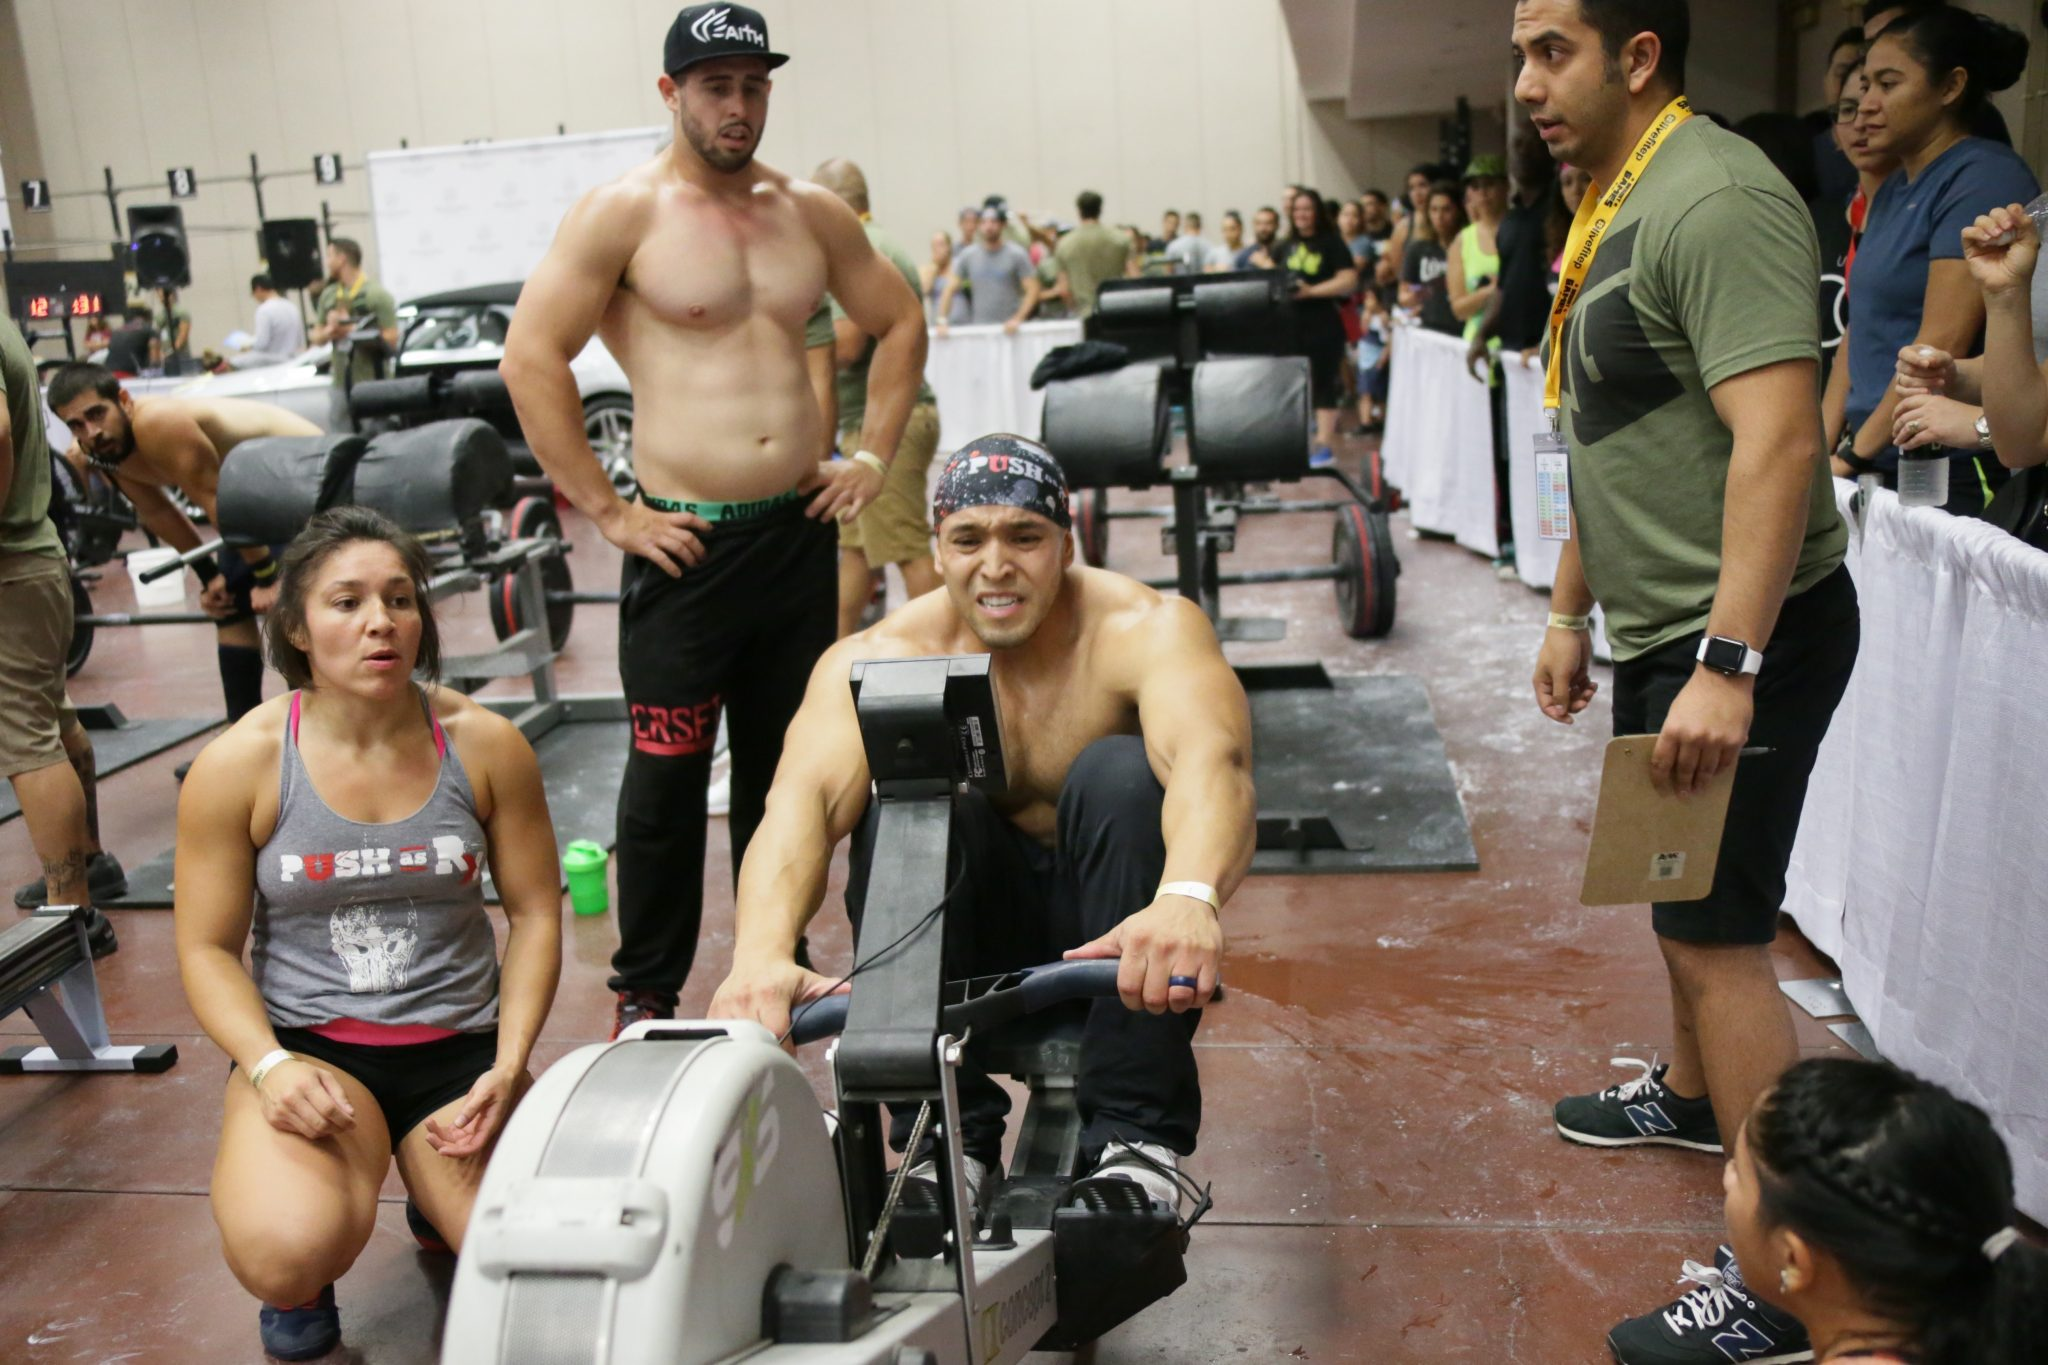 proper posture daniel alvarado rowing for push as rx el paso tx.